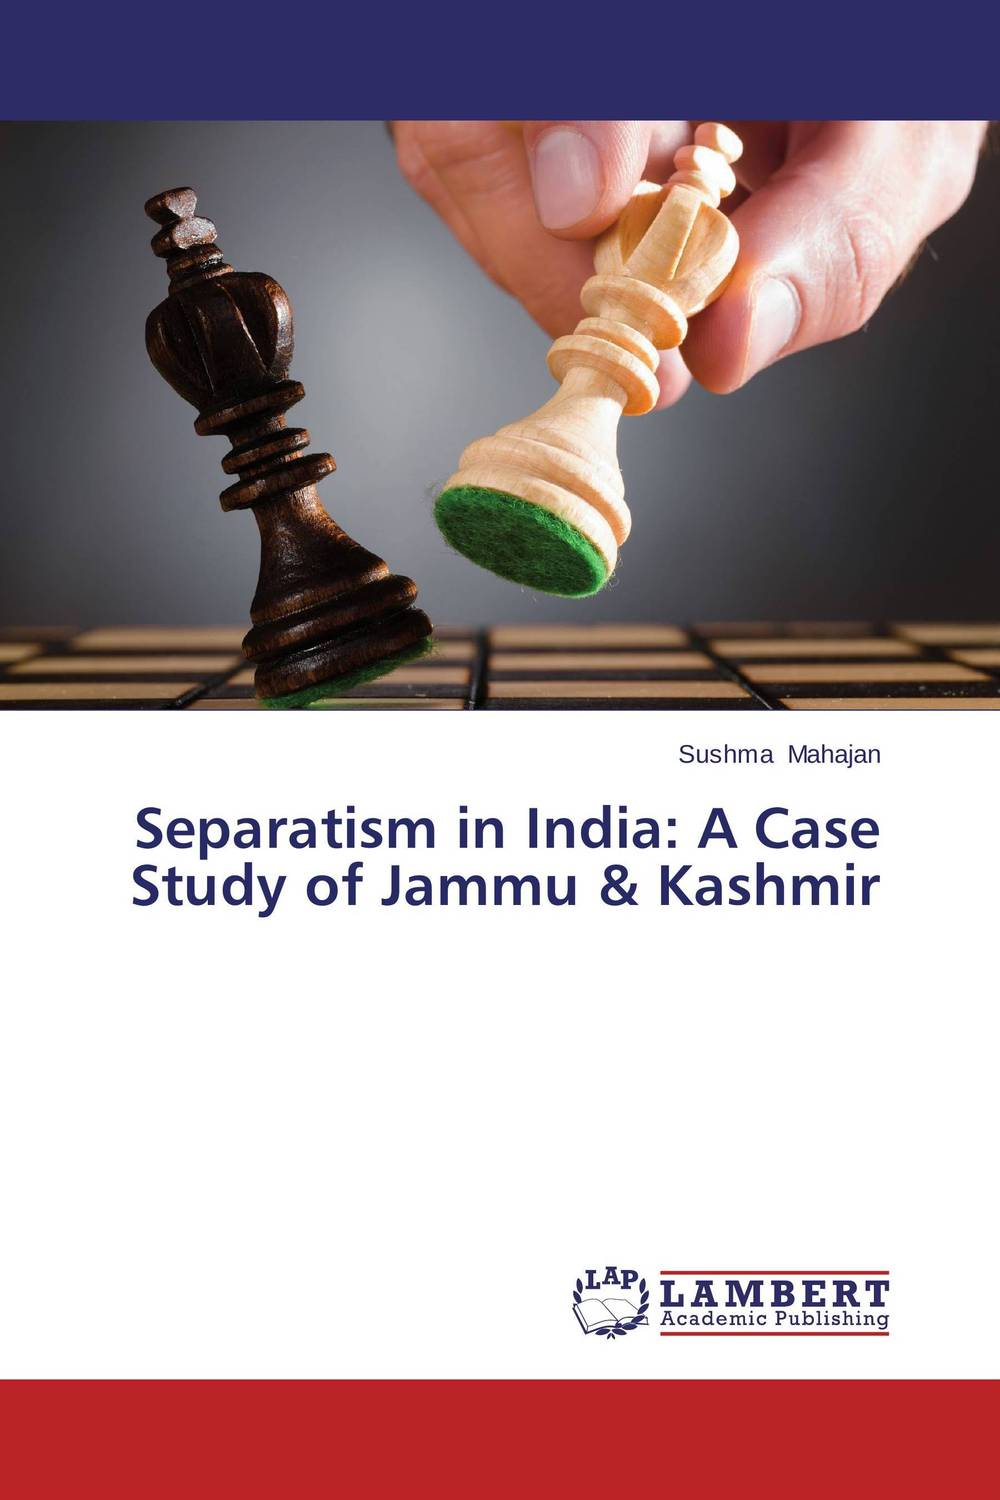 Separatism in India: A Case Study of Jammu & Kashmir pastoralism and agriculture pennar basin india